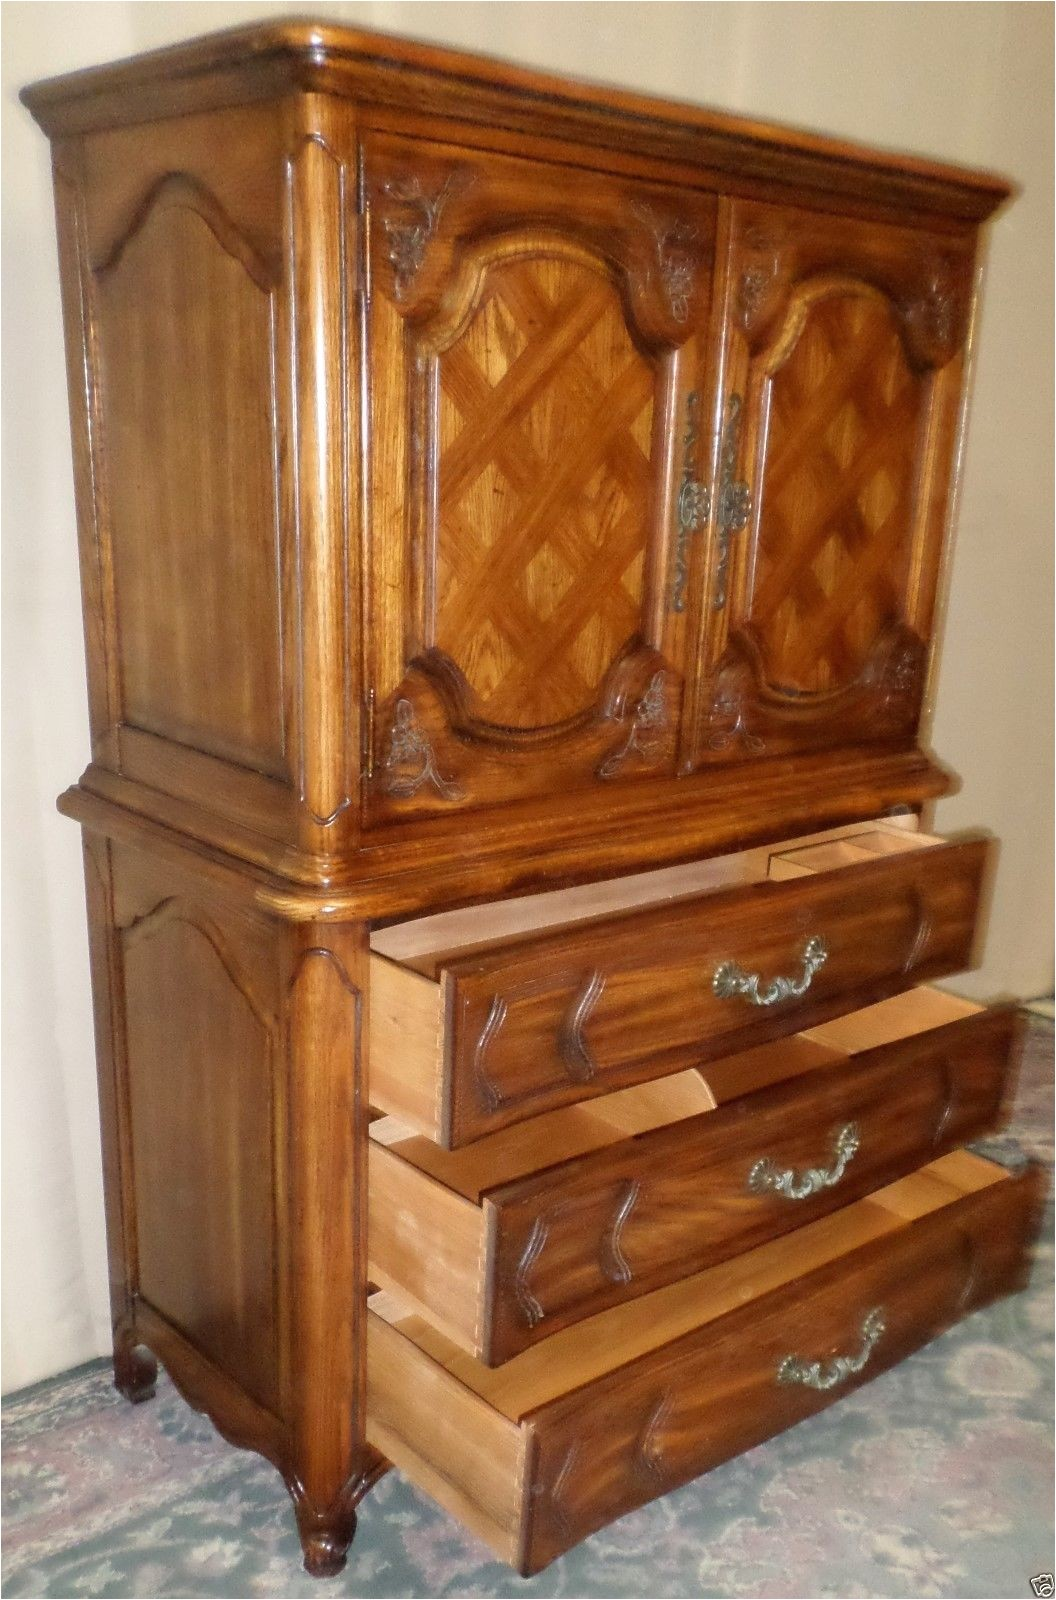 thomasville oak armoire gentlemans chest french provincial style 371715086848